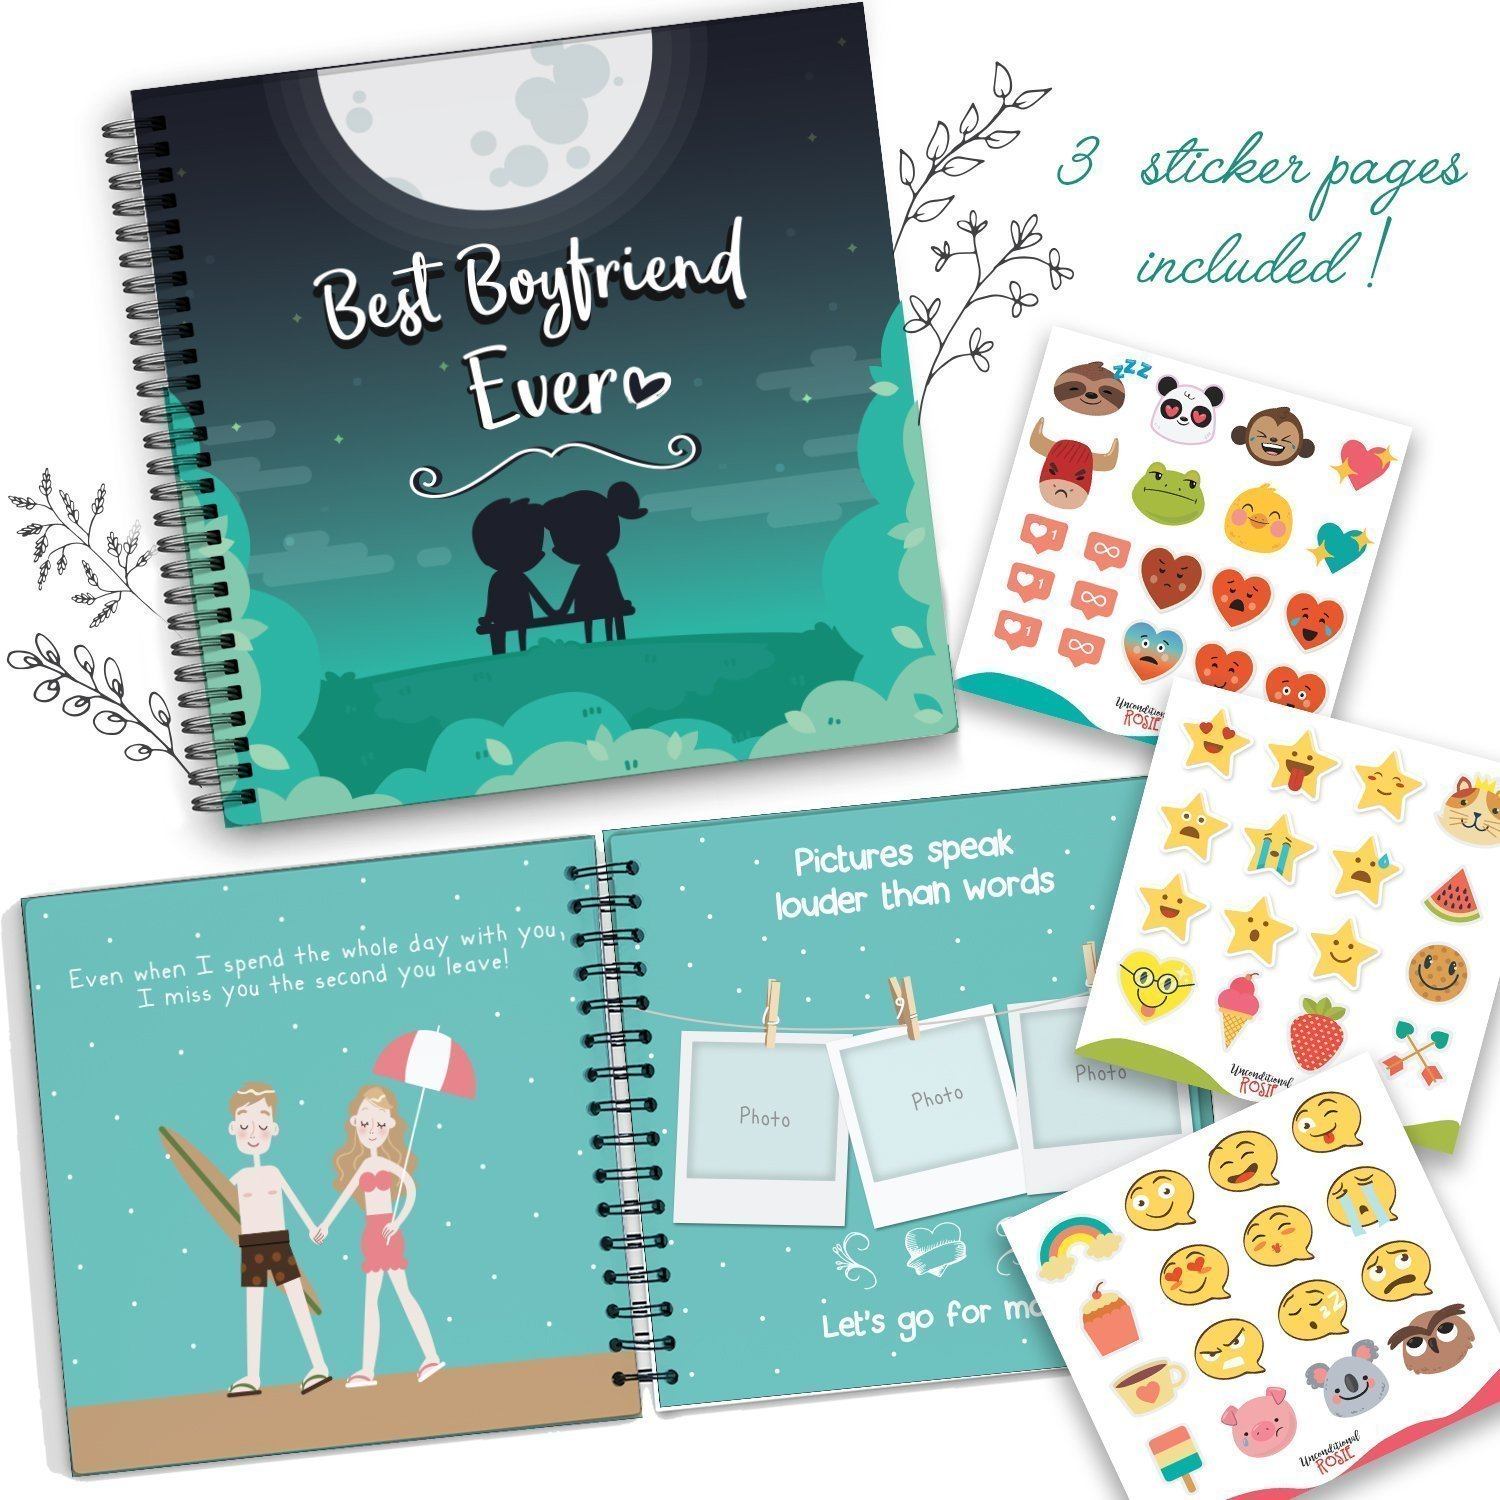 Best Boyfriend Ever Memory Book - The Best Romantic Gift Ideas For Your Boyfriend! Your BF Will Love This Cute Present For His Birthday, Valentine's Day, Christmas Or A Special Date!